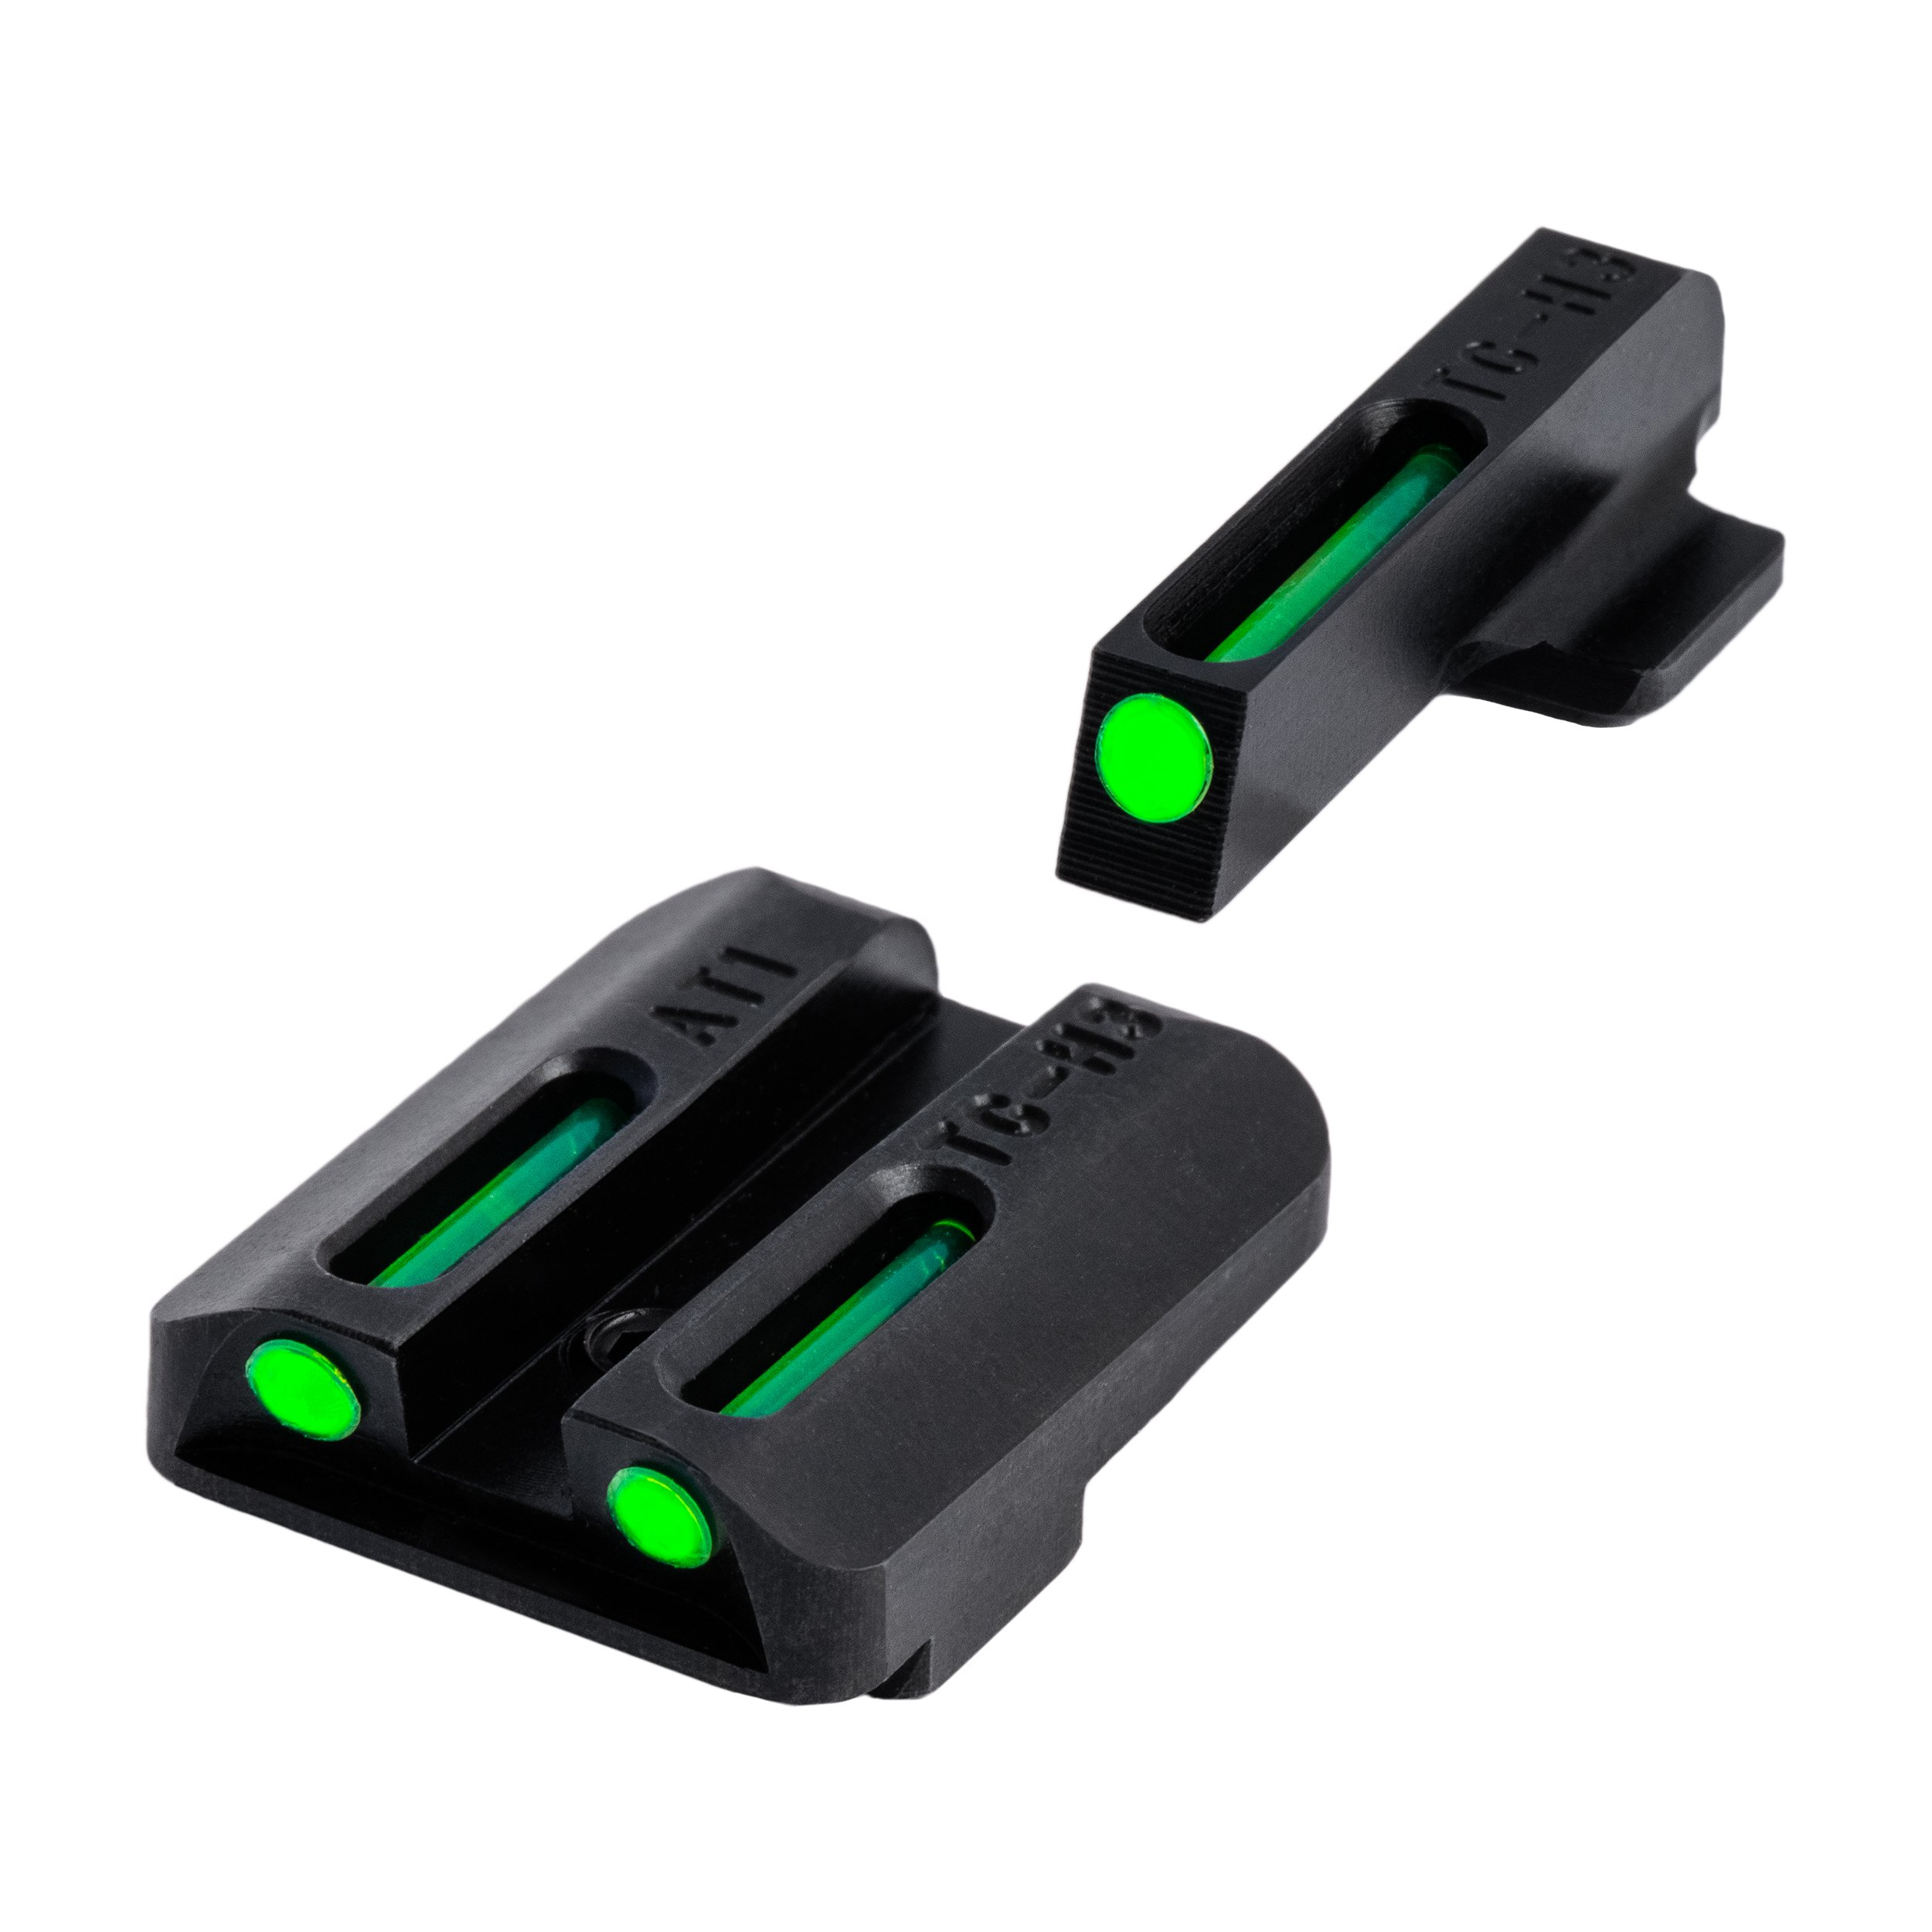 TRUGLO TFO Tritium and Fiber-Optic Handgun Sights for Kahr Arms Pistols, Kahr Arms K, MK, P, PM, T&TP Models with New Dovetail (Produced After 2004), Green Front, Green Rear by TRUGLO